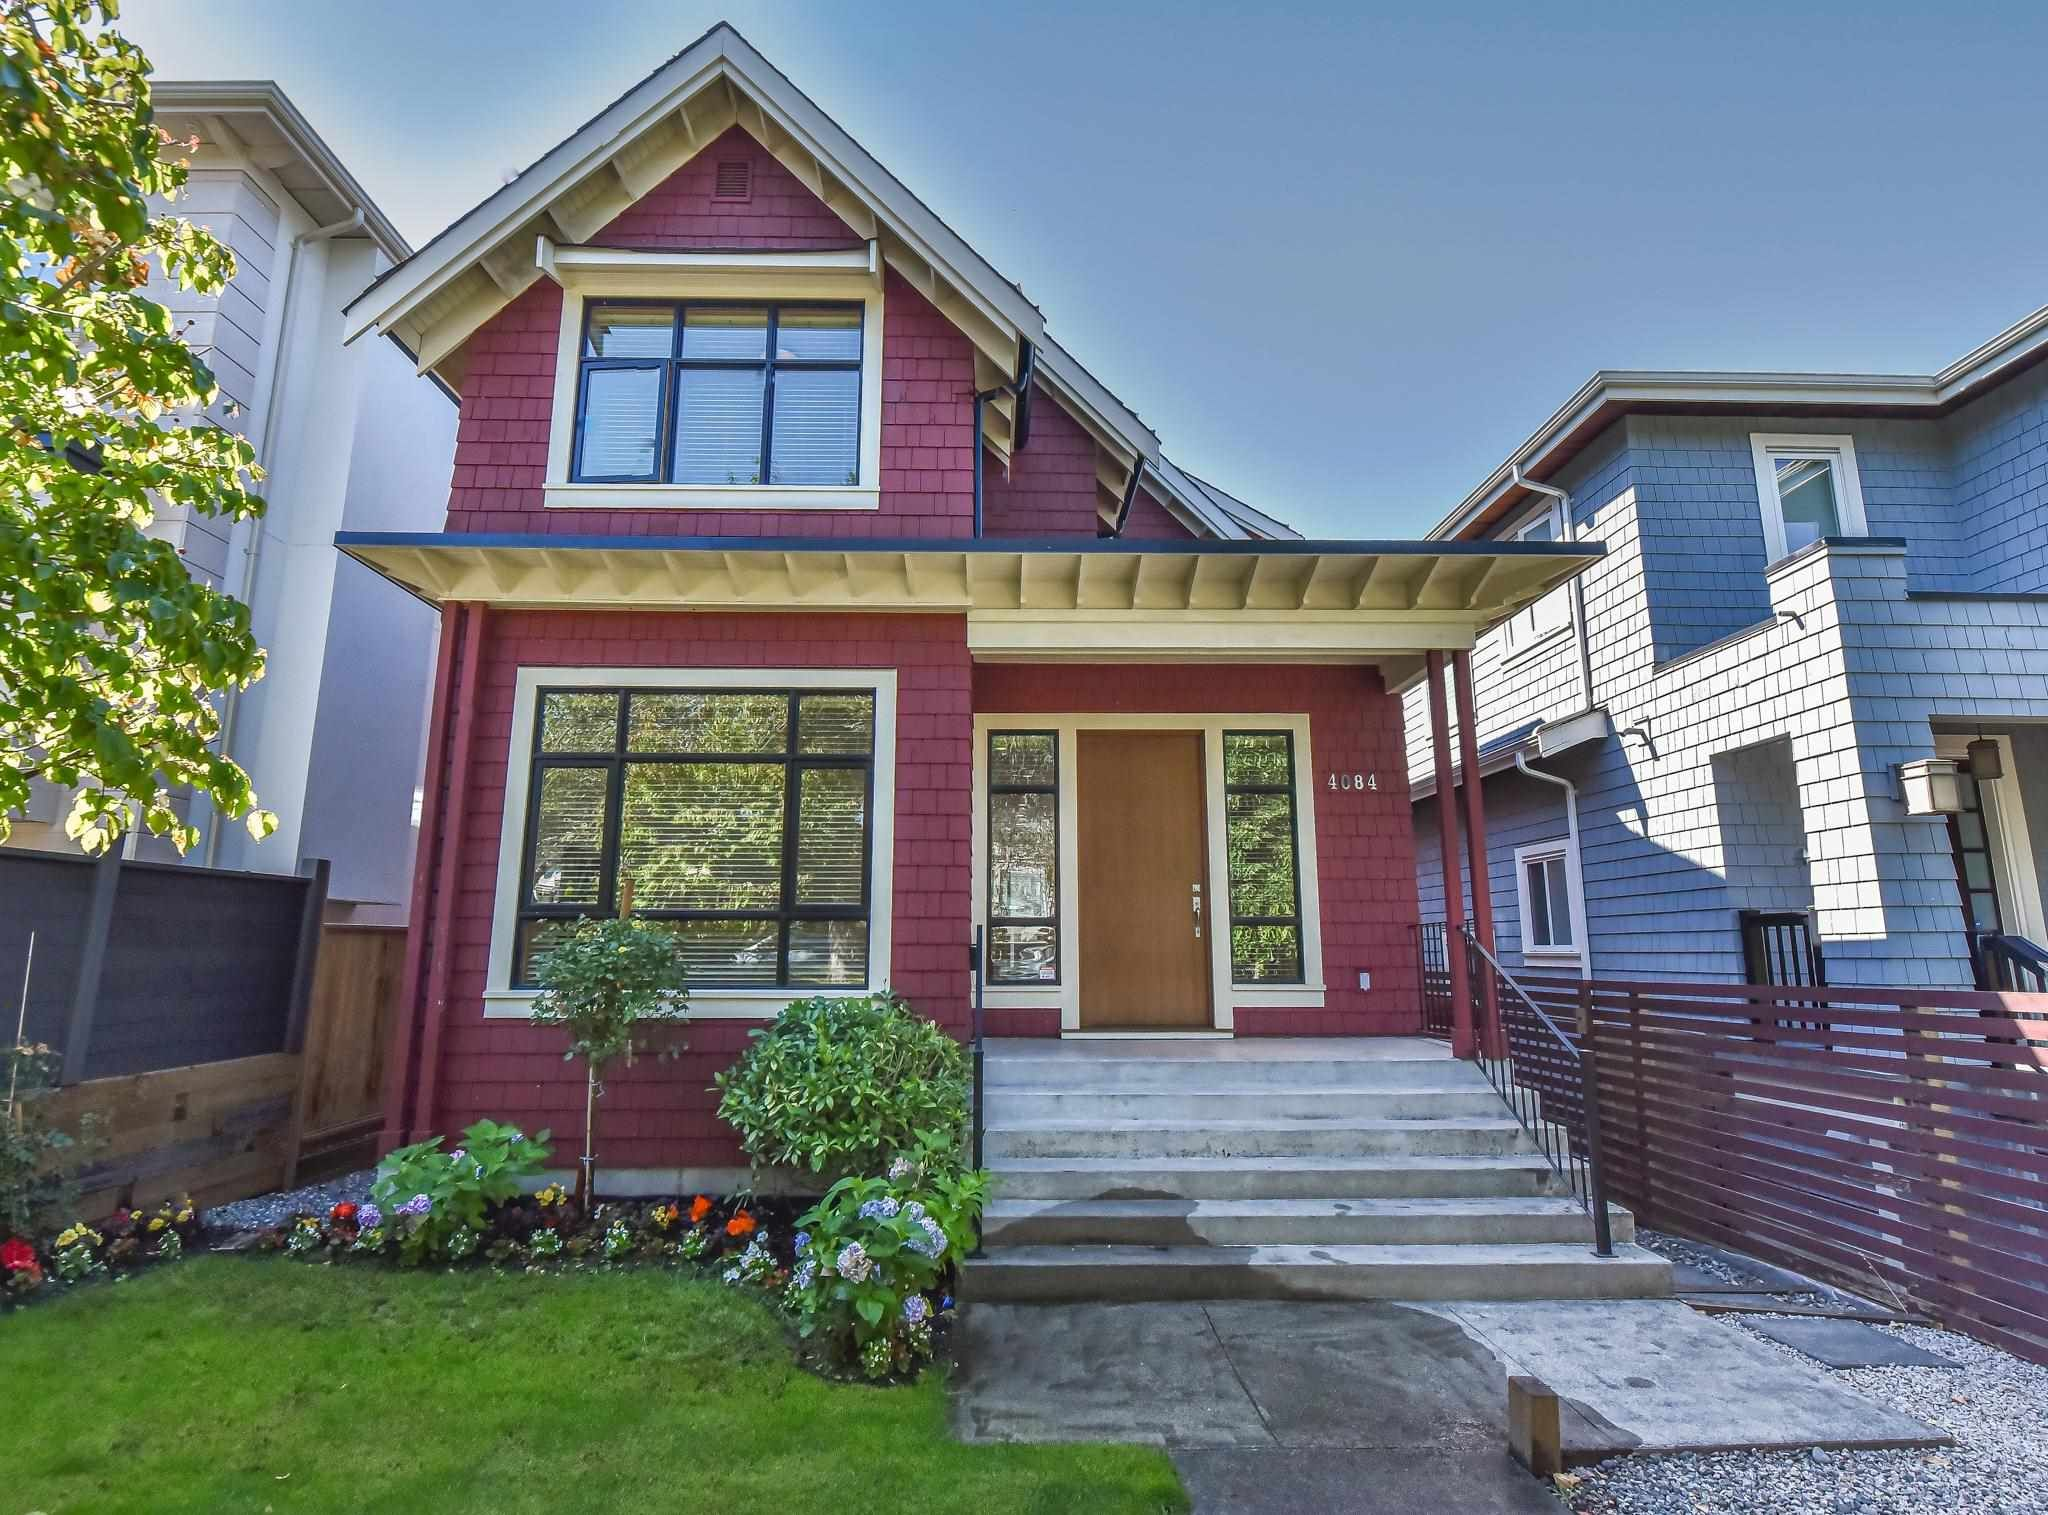 Main Photo: 4084 W 18TH Avenue in Vancouver: Dunbar House for sale (Vancouver West)  : MLS®# R2604937